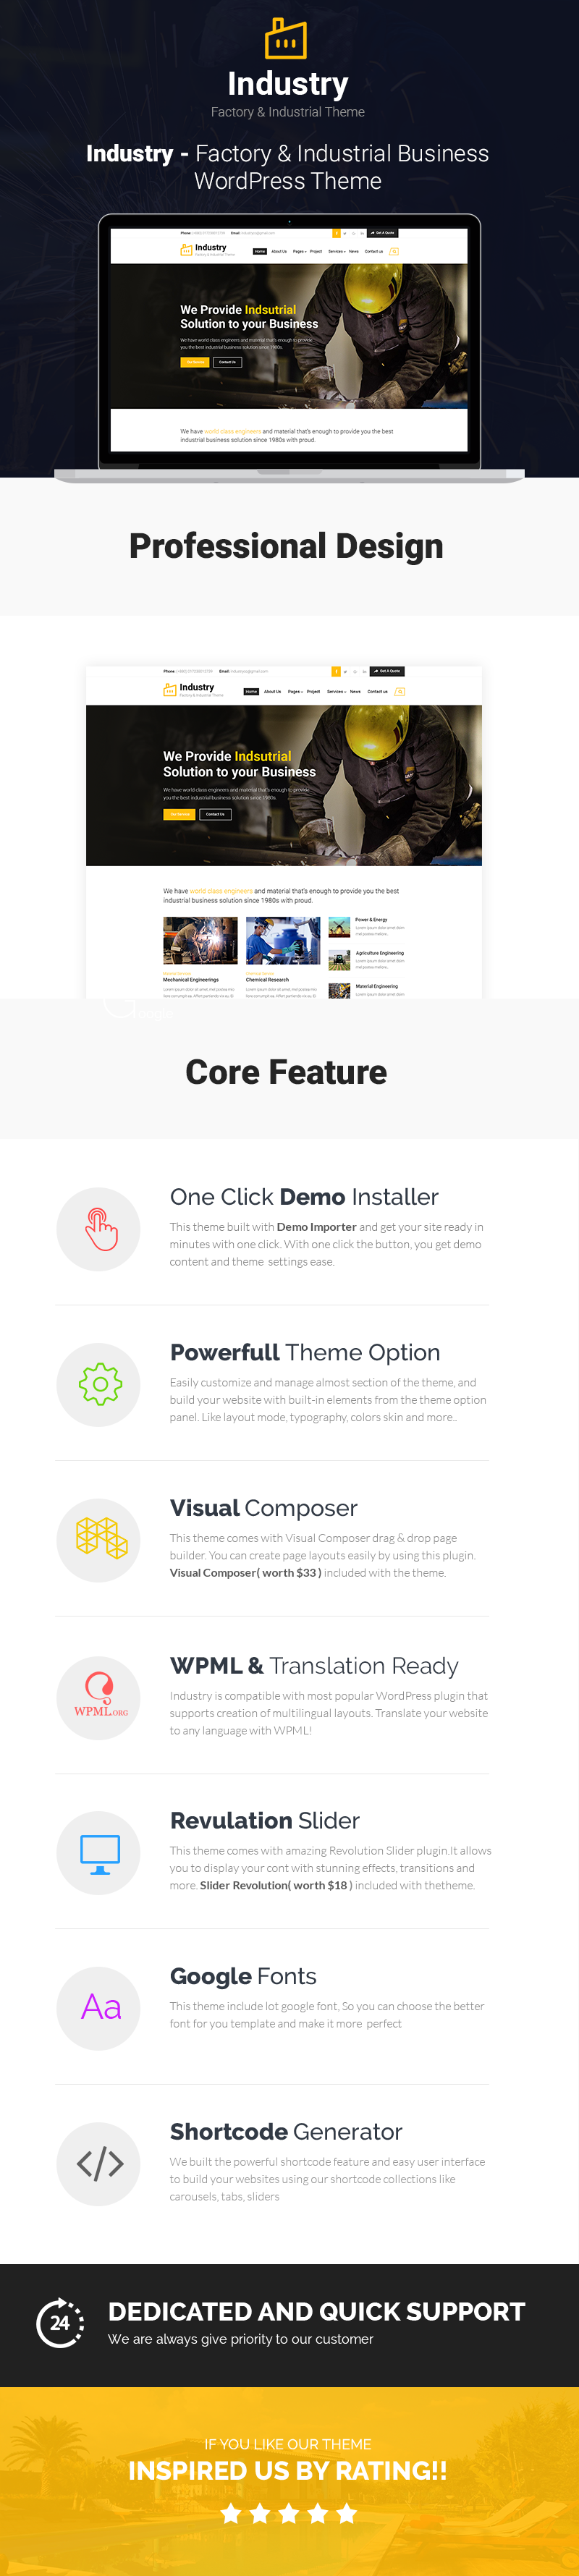 Industry - Factory & Industrial Business WordPress Theme - 1